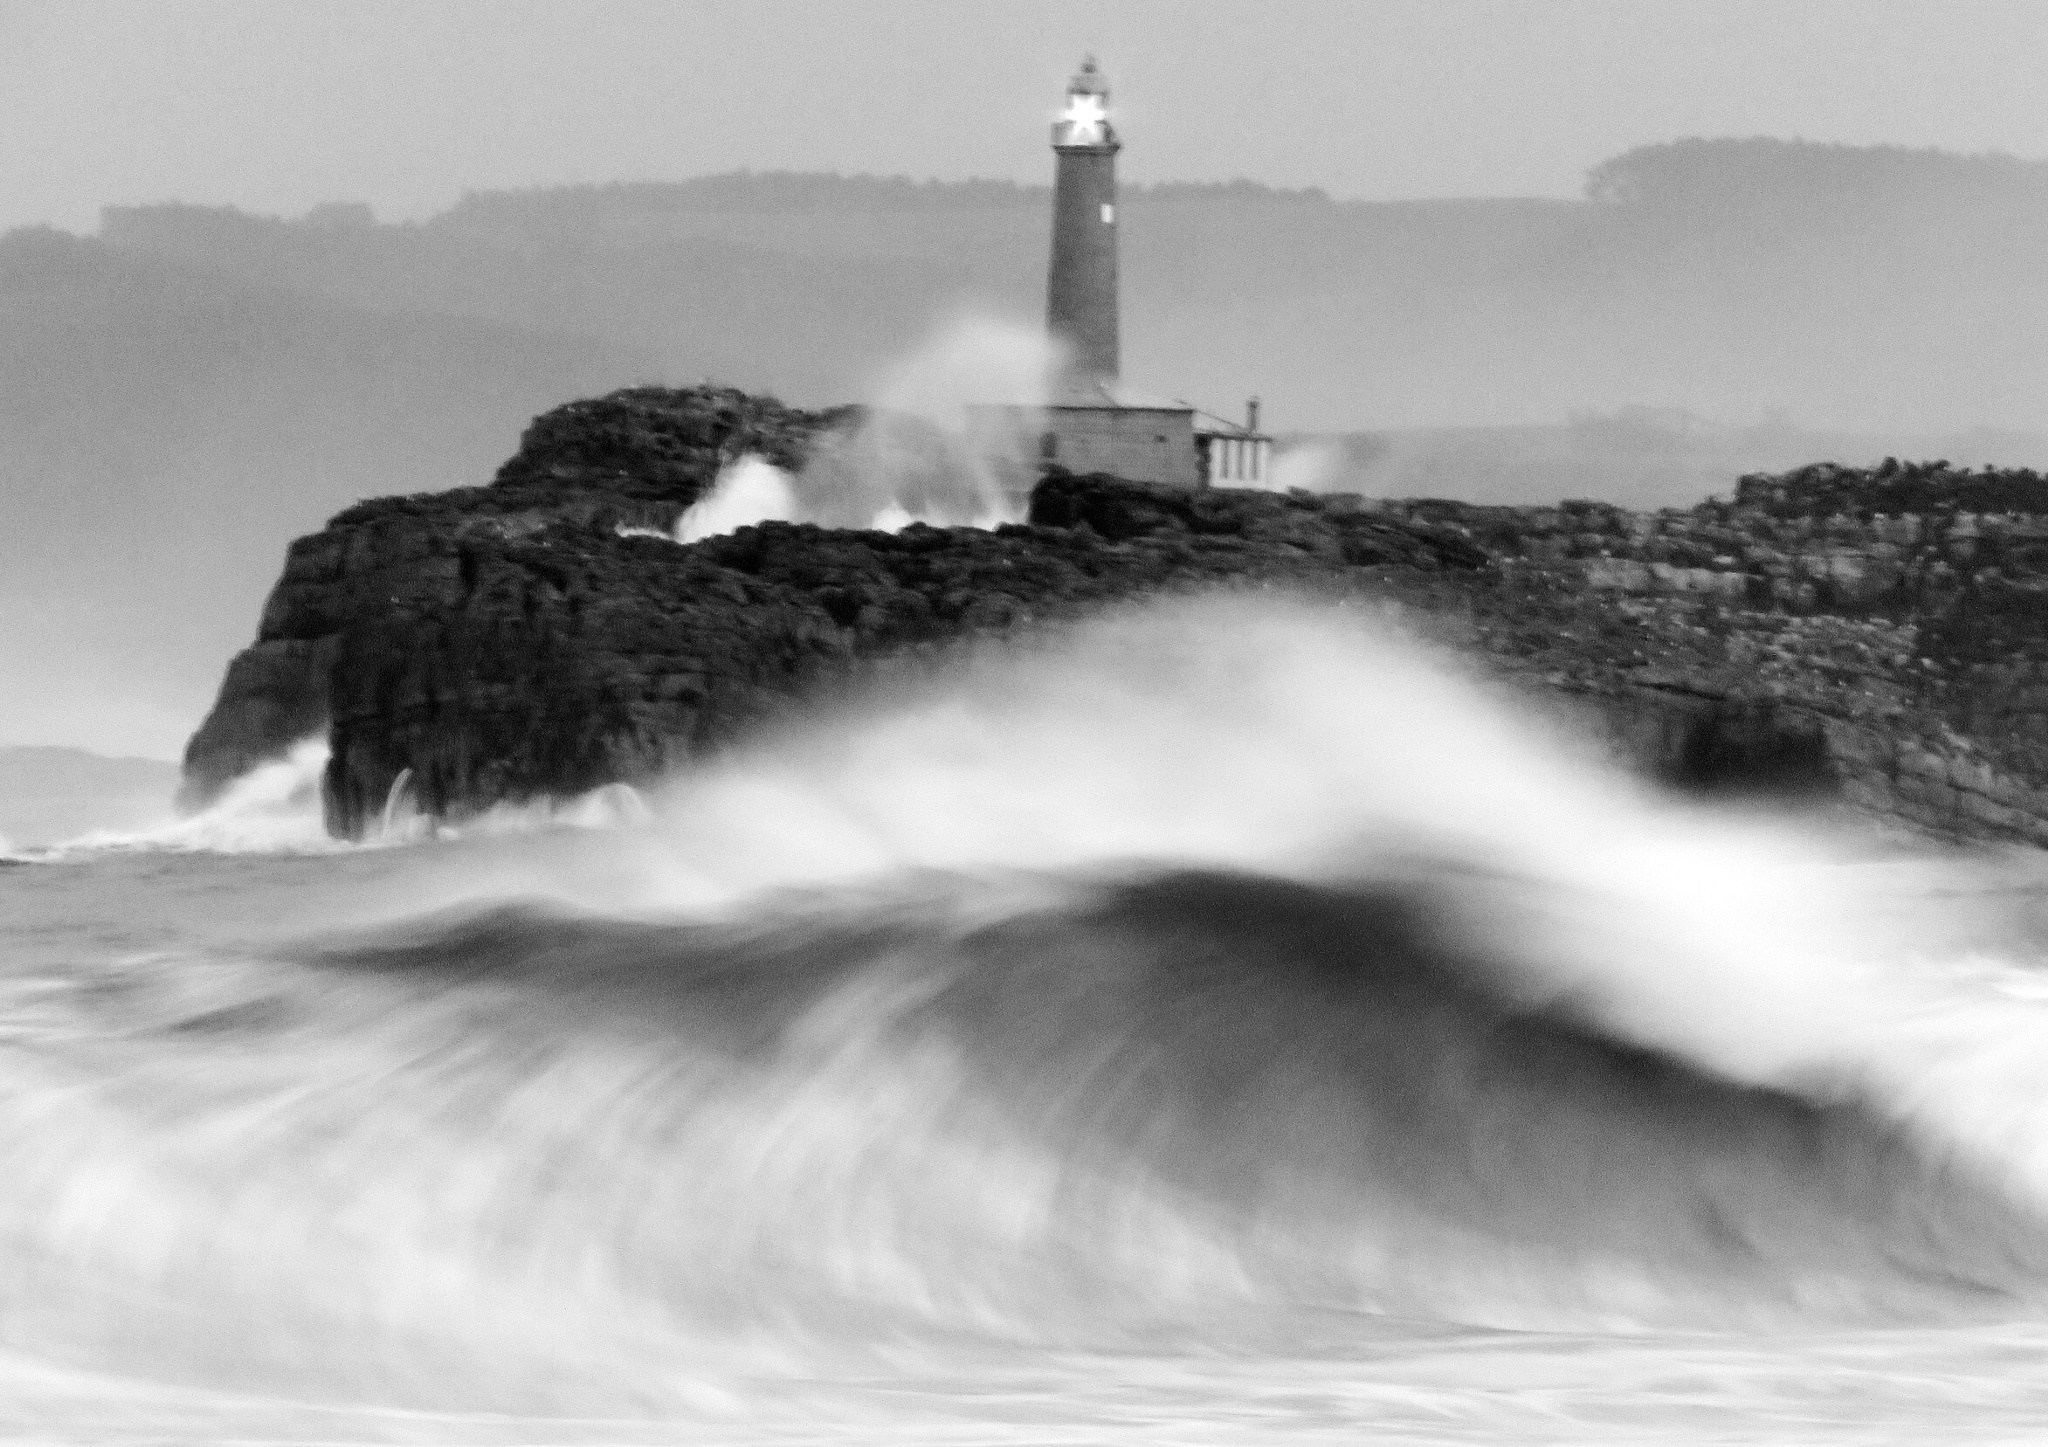 Mouro by michel h2